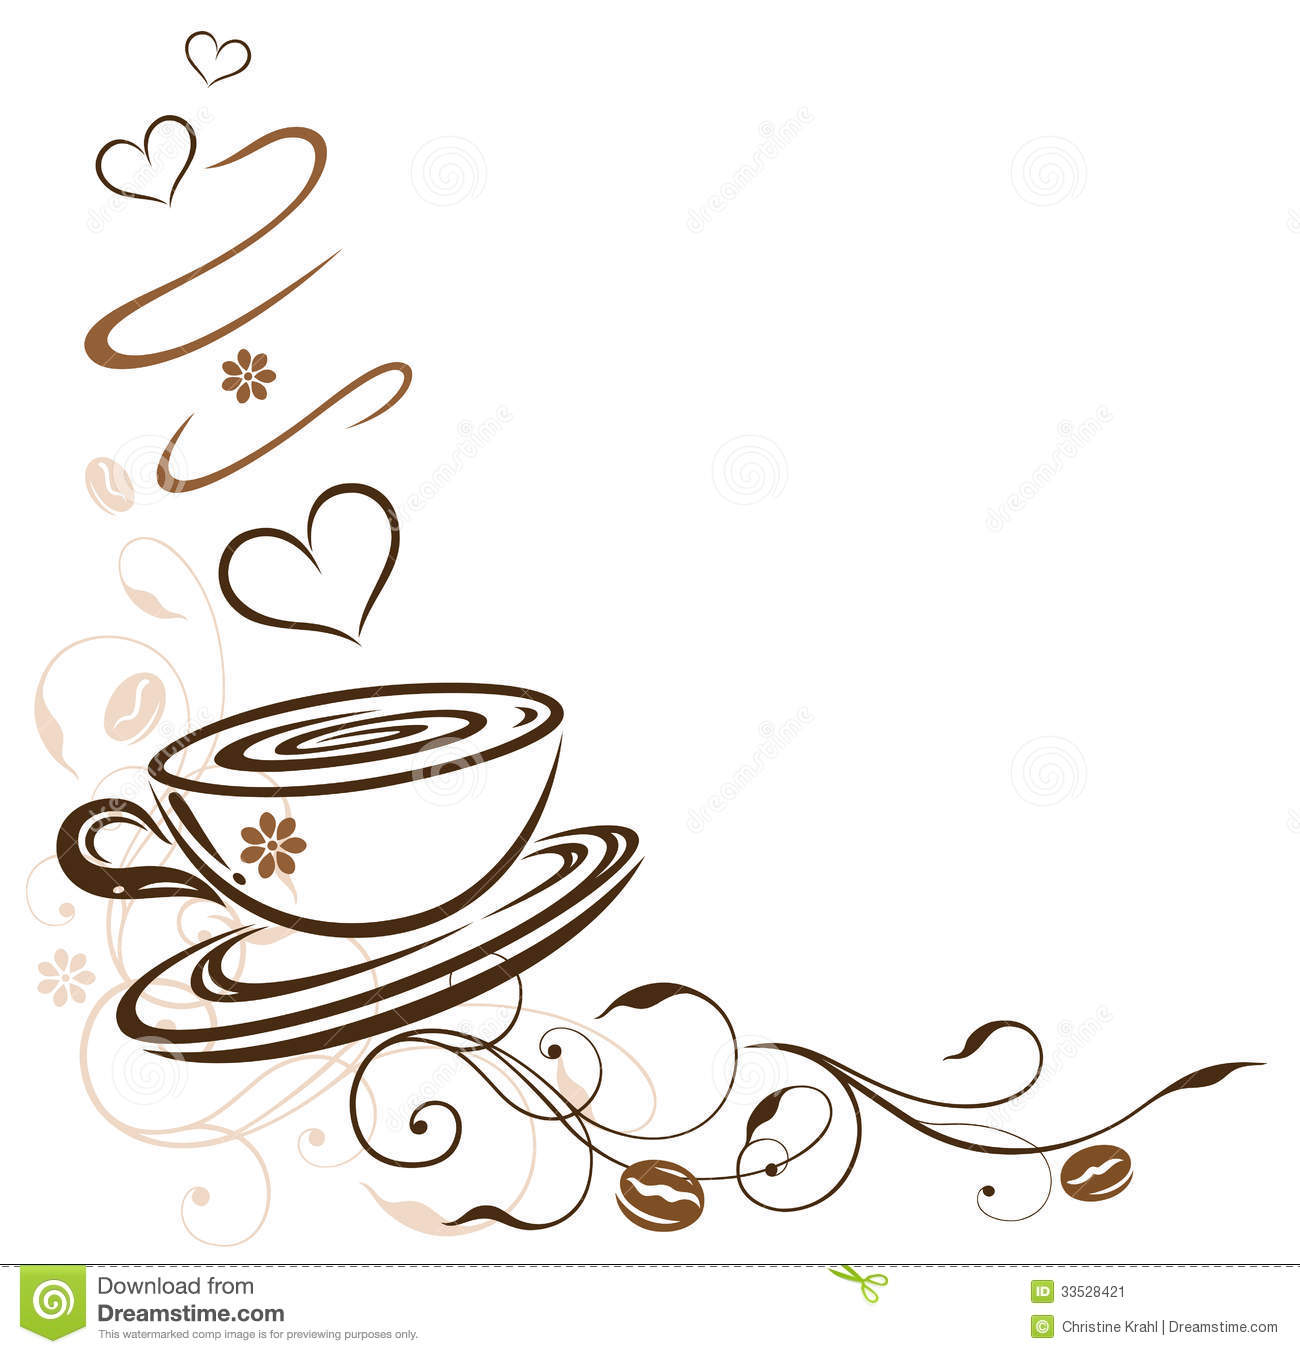 Coffee cup border with hearts and coffee beans.